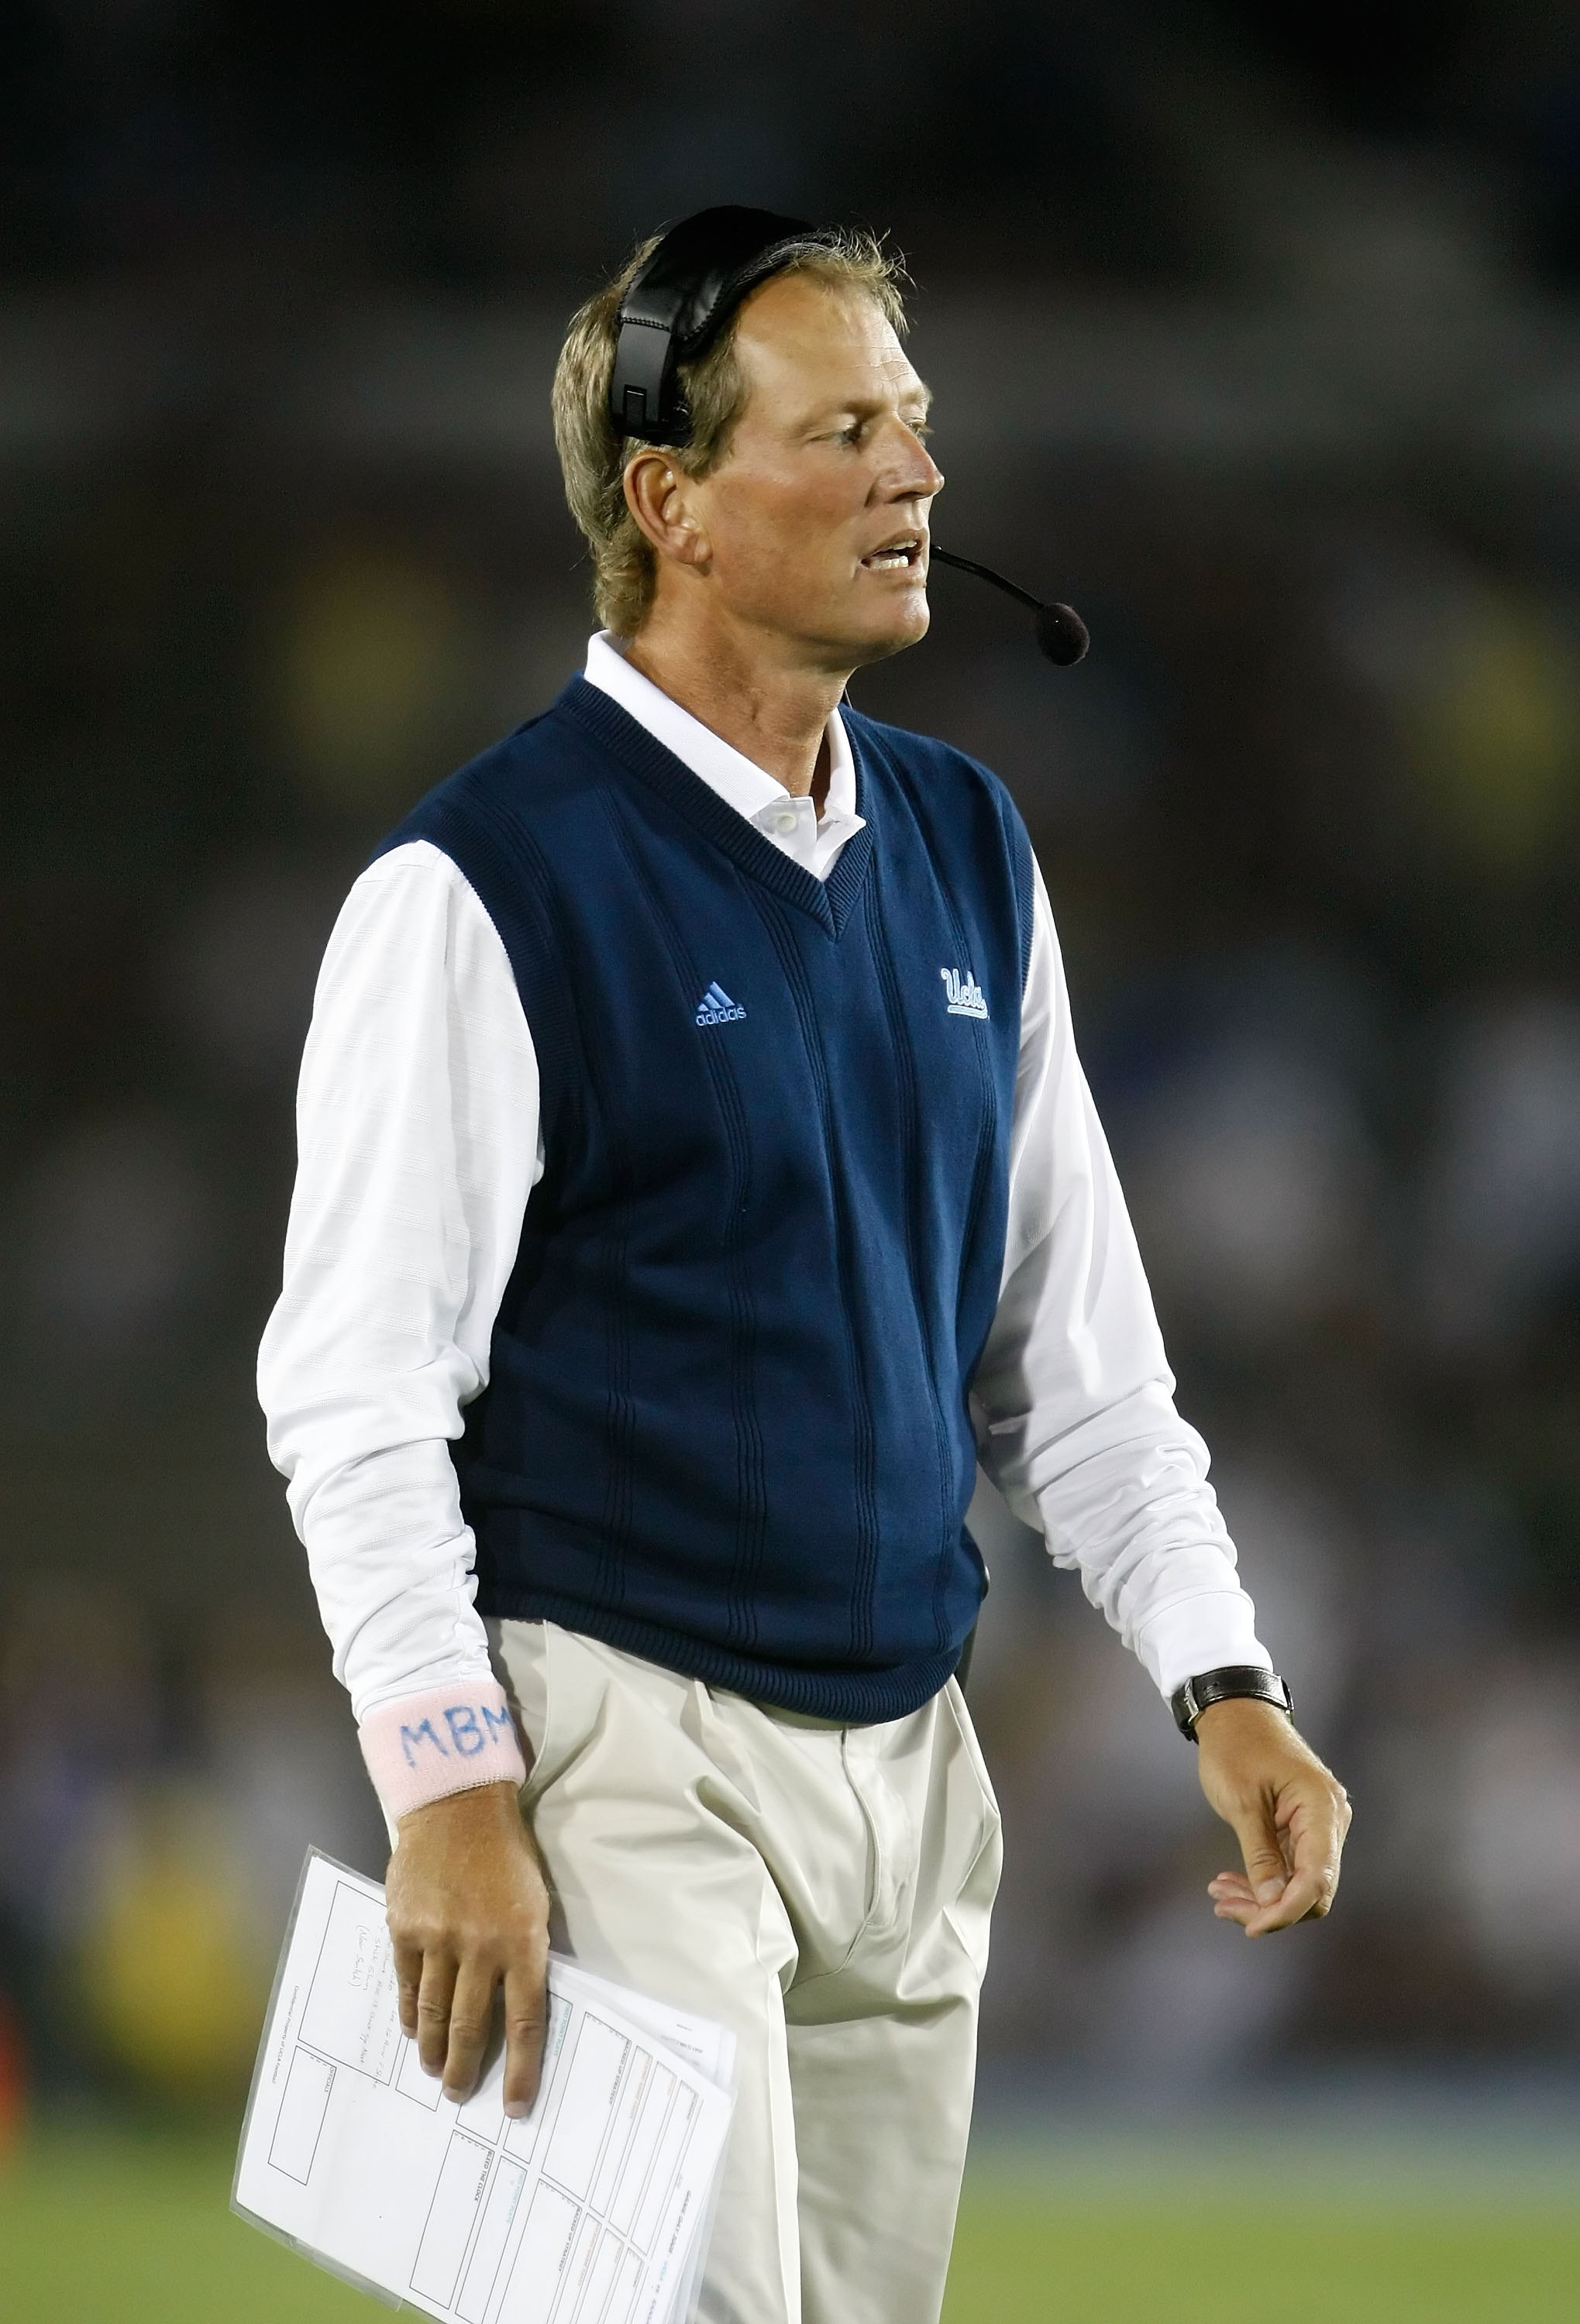 PASADENA, CA - SEPTEMBER 19:  UCLA Bruins head coach Rick Neuheisel looks on from the sideline against the Kansas State Wildcats at the Rose Bowl on September 19, 2009 in Pasadena, California. UCLA defeated Kansas State 23-9.  (Photo by Jeff Gross/Getty I